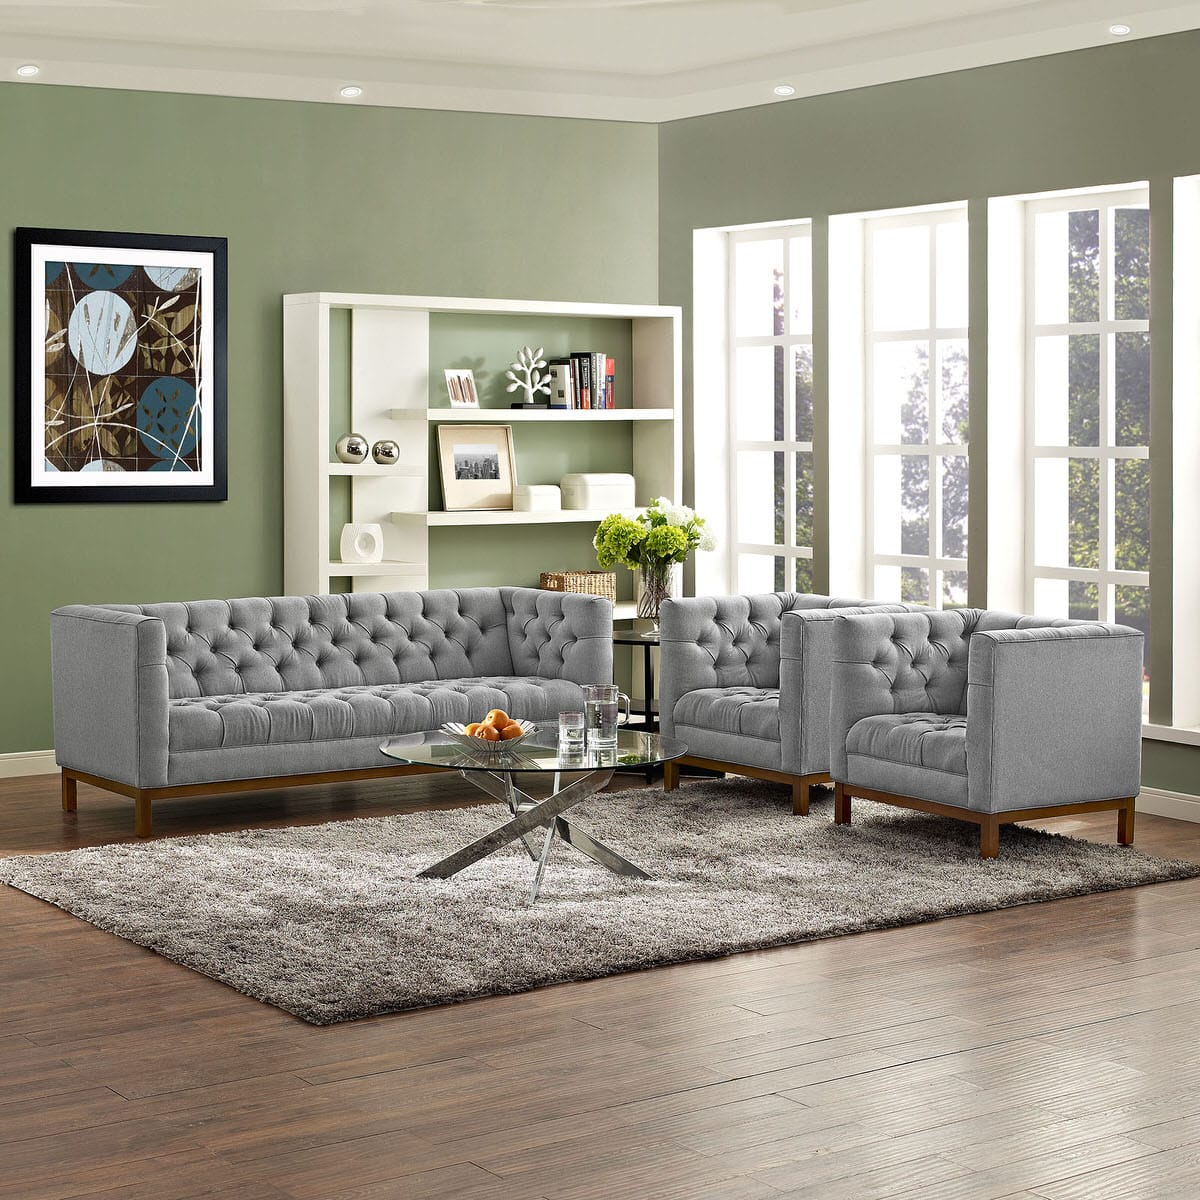 Panache Living Room Set Upholstered Fabric Set of 3 Expectation Gray ...